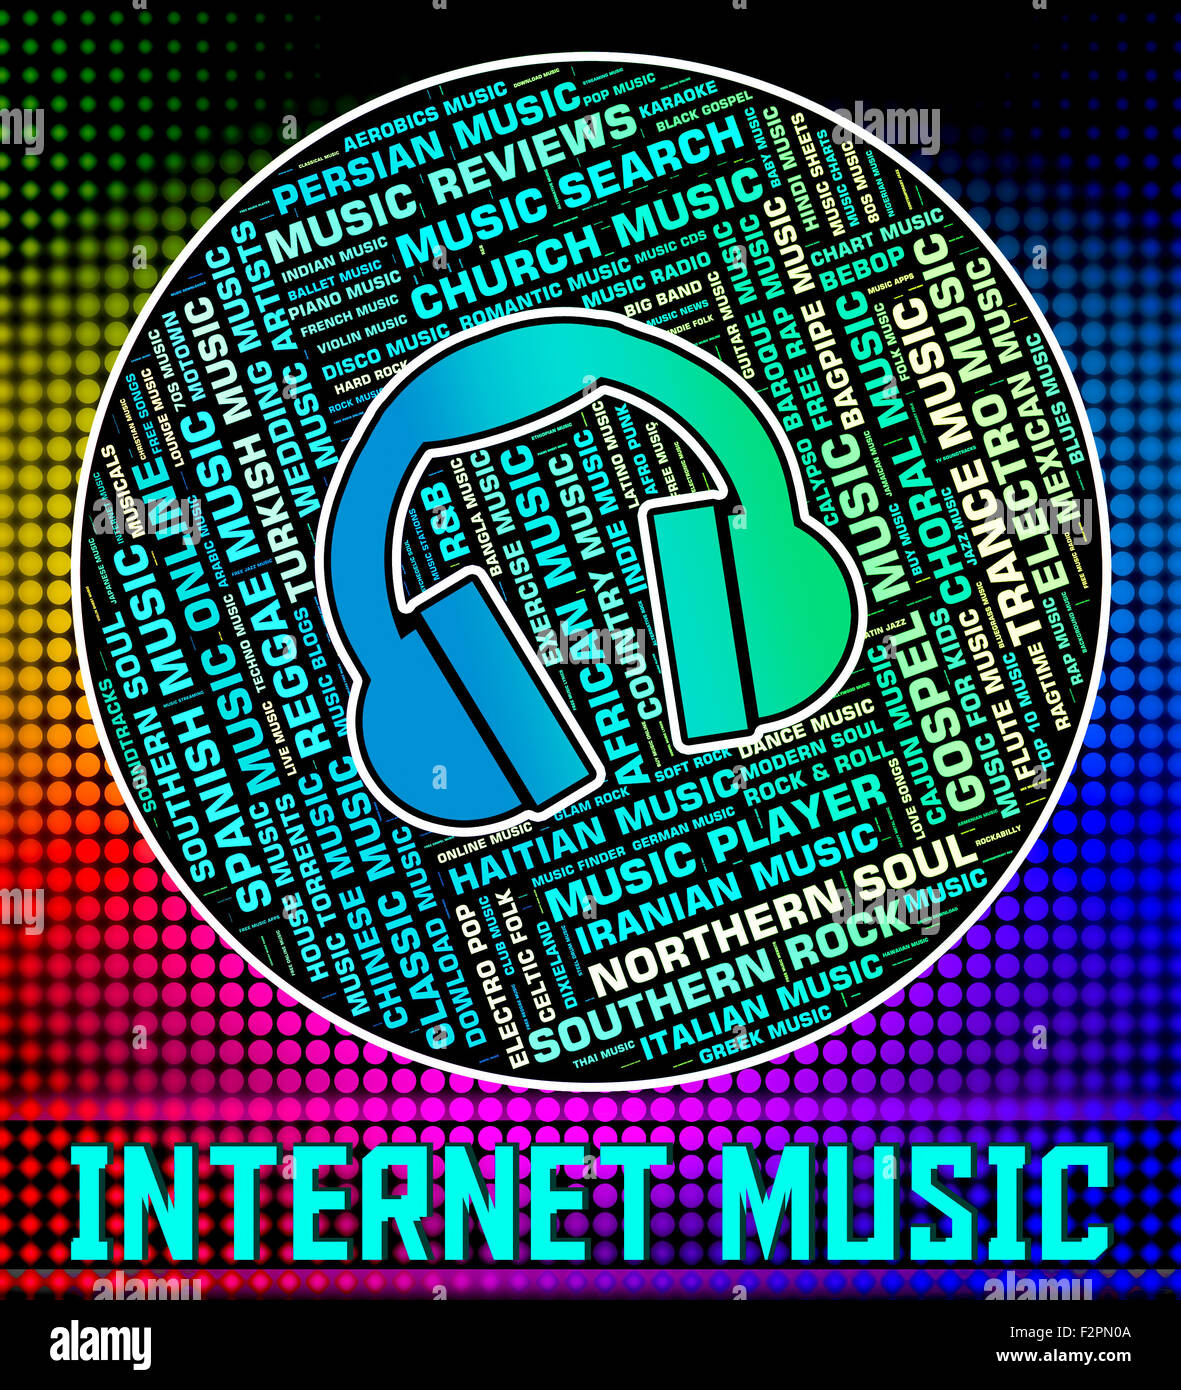 Internet Music Indicating World Wide Web And Web Site Stock